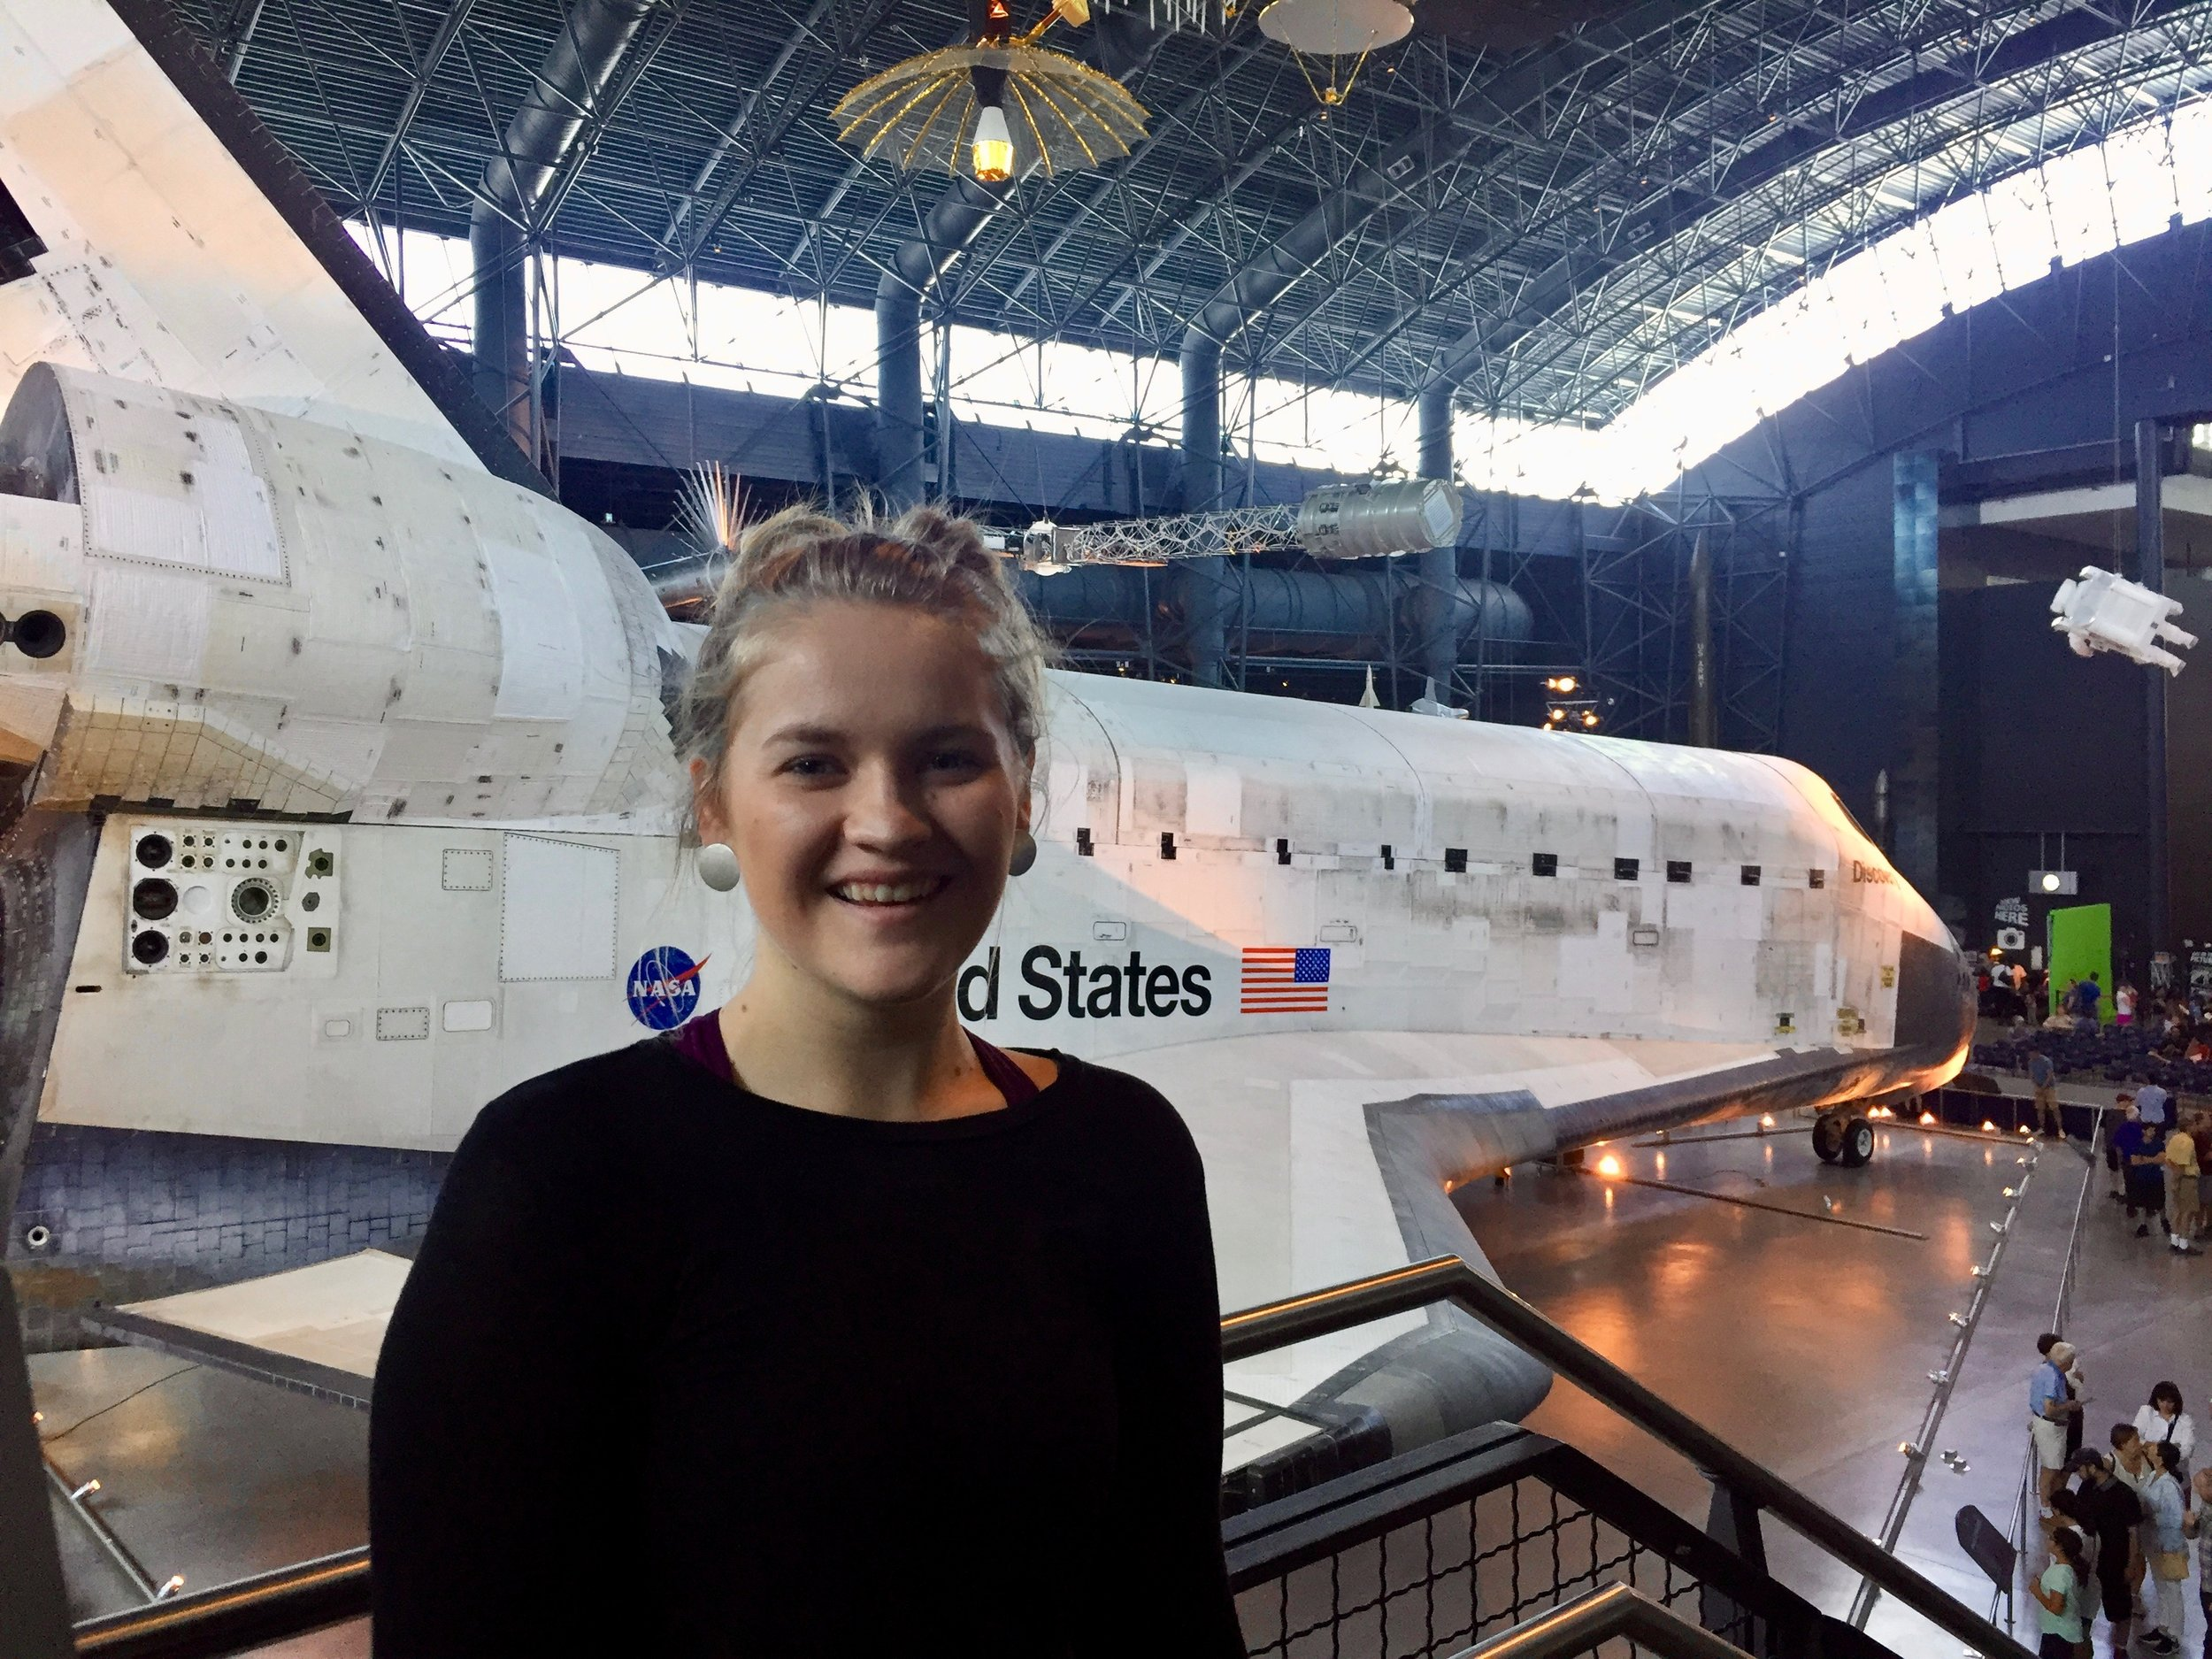 Me in front of the space shuttle Discovery at the  Smithsonian National Air and Space Museum